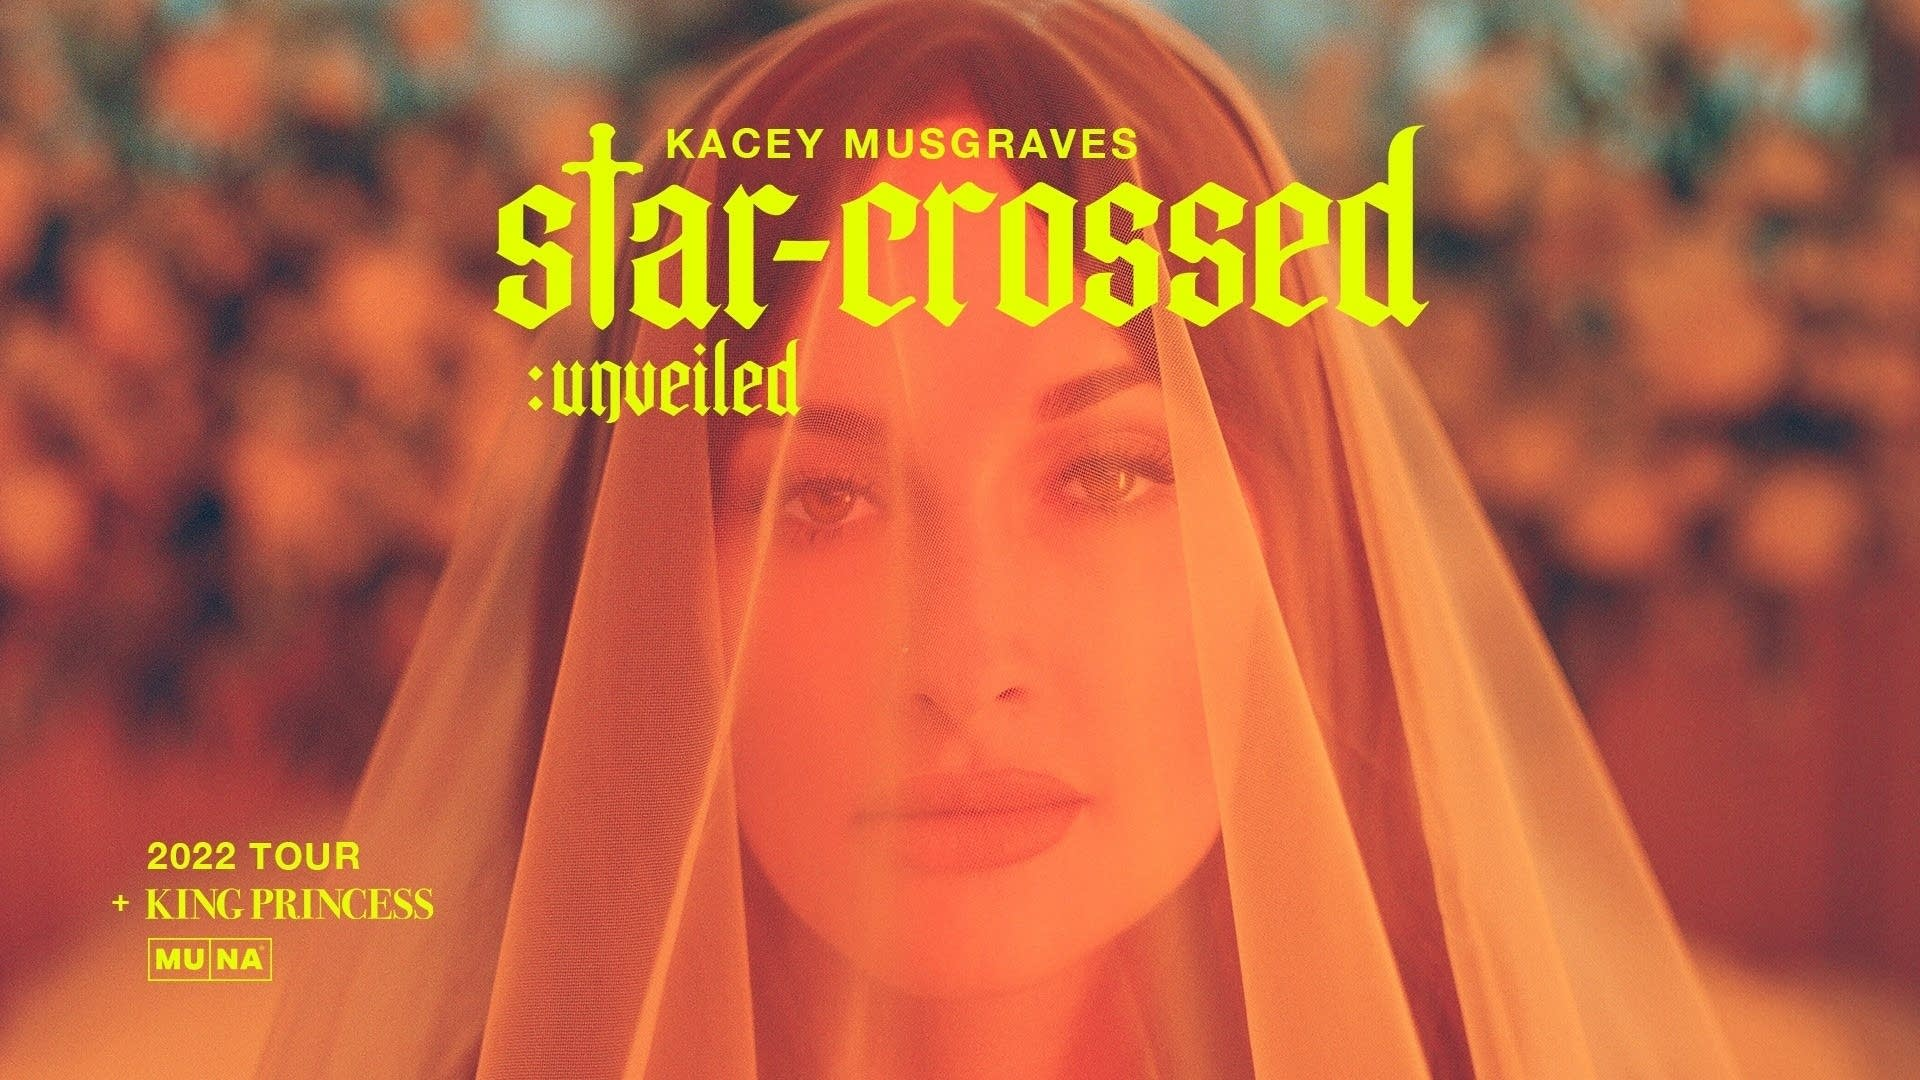 Kacey Musgraves - starcrossed unveiled tour poster